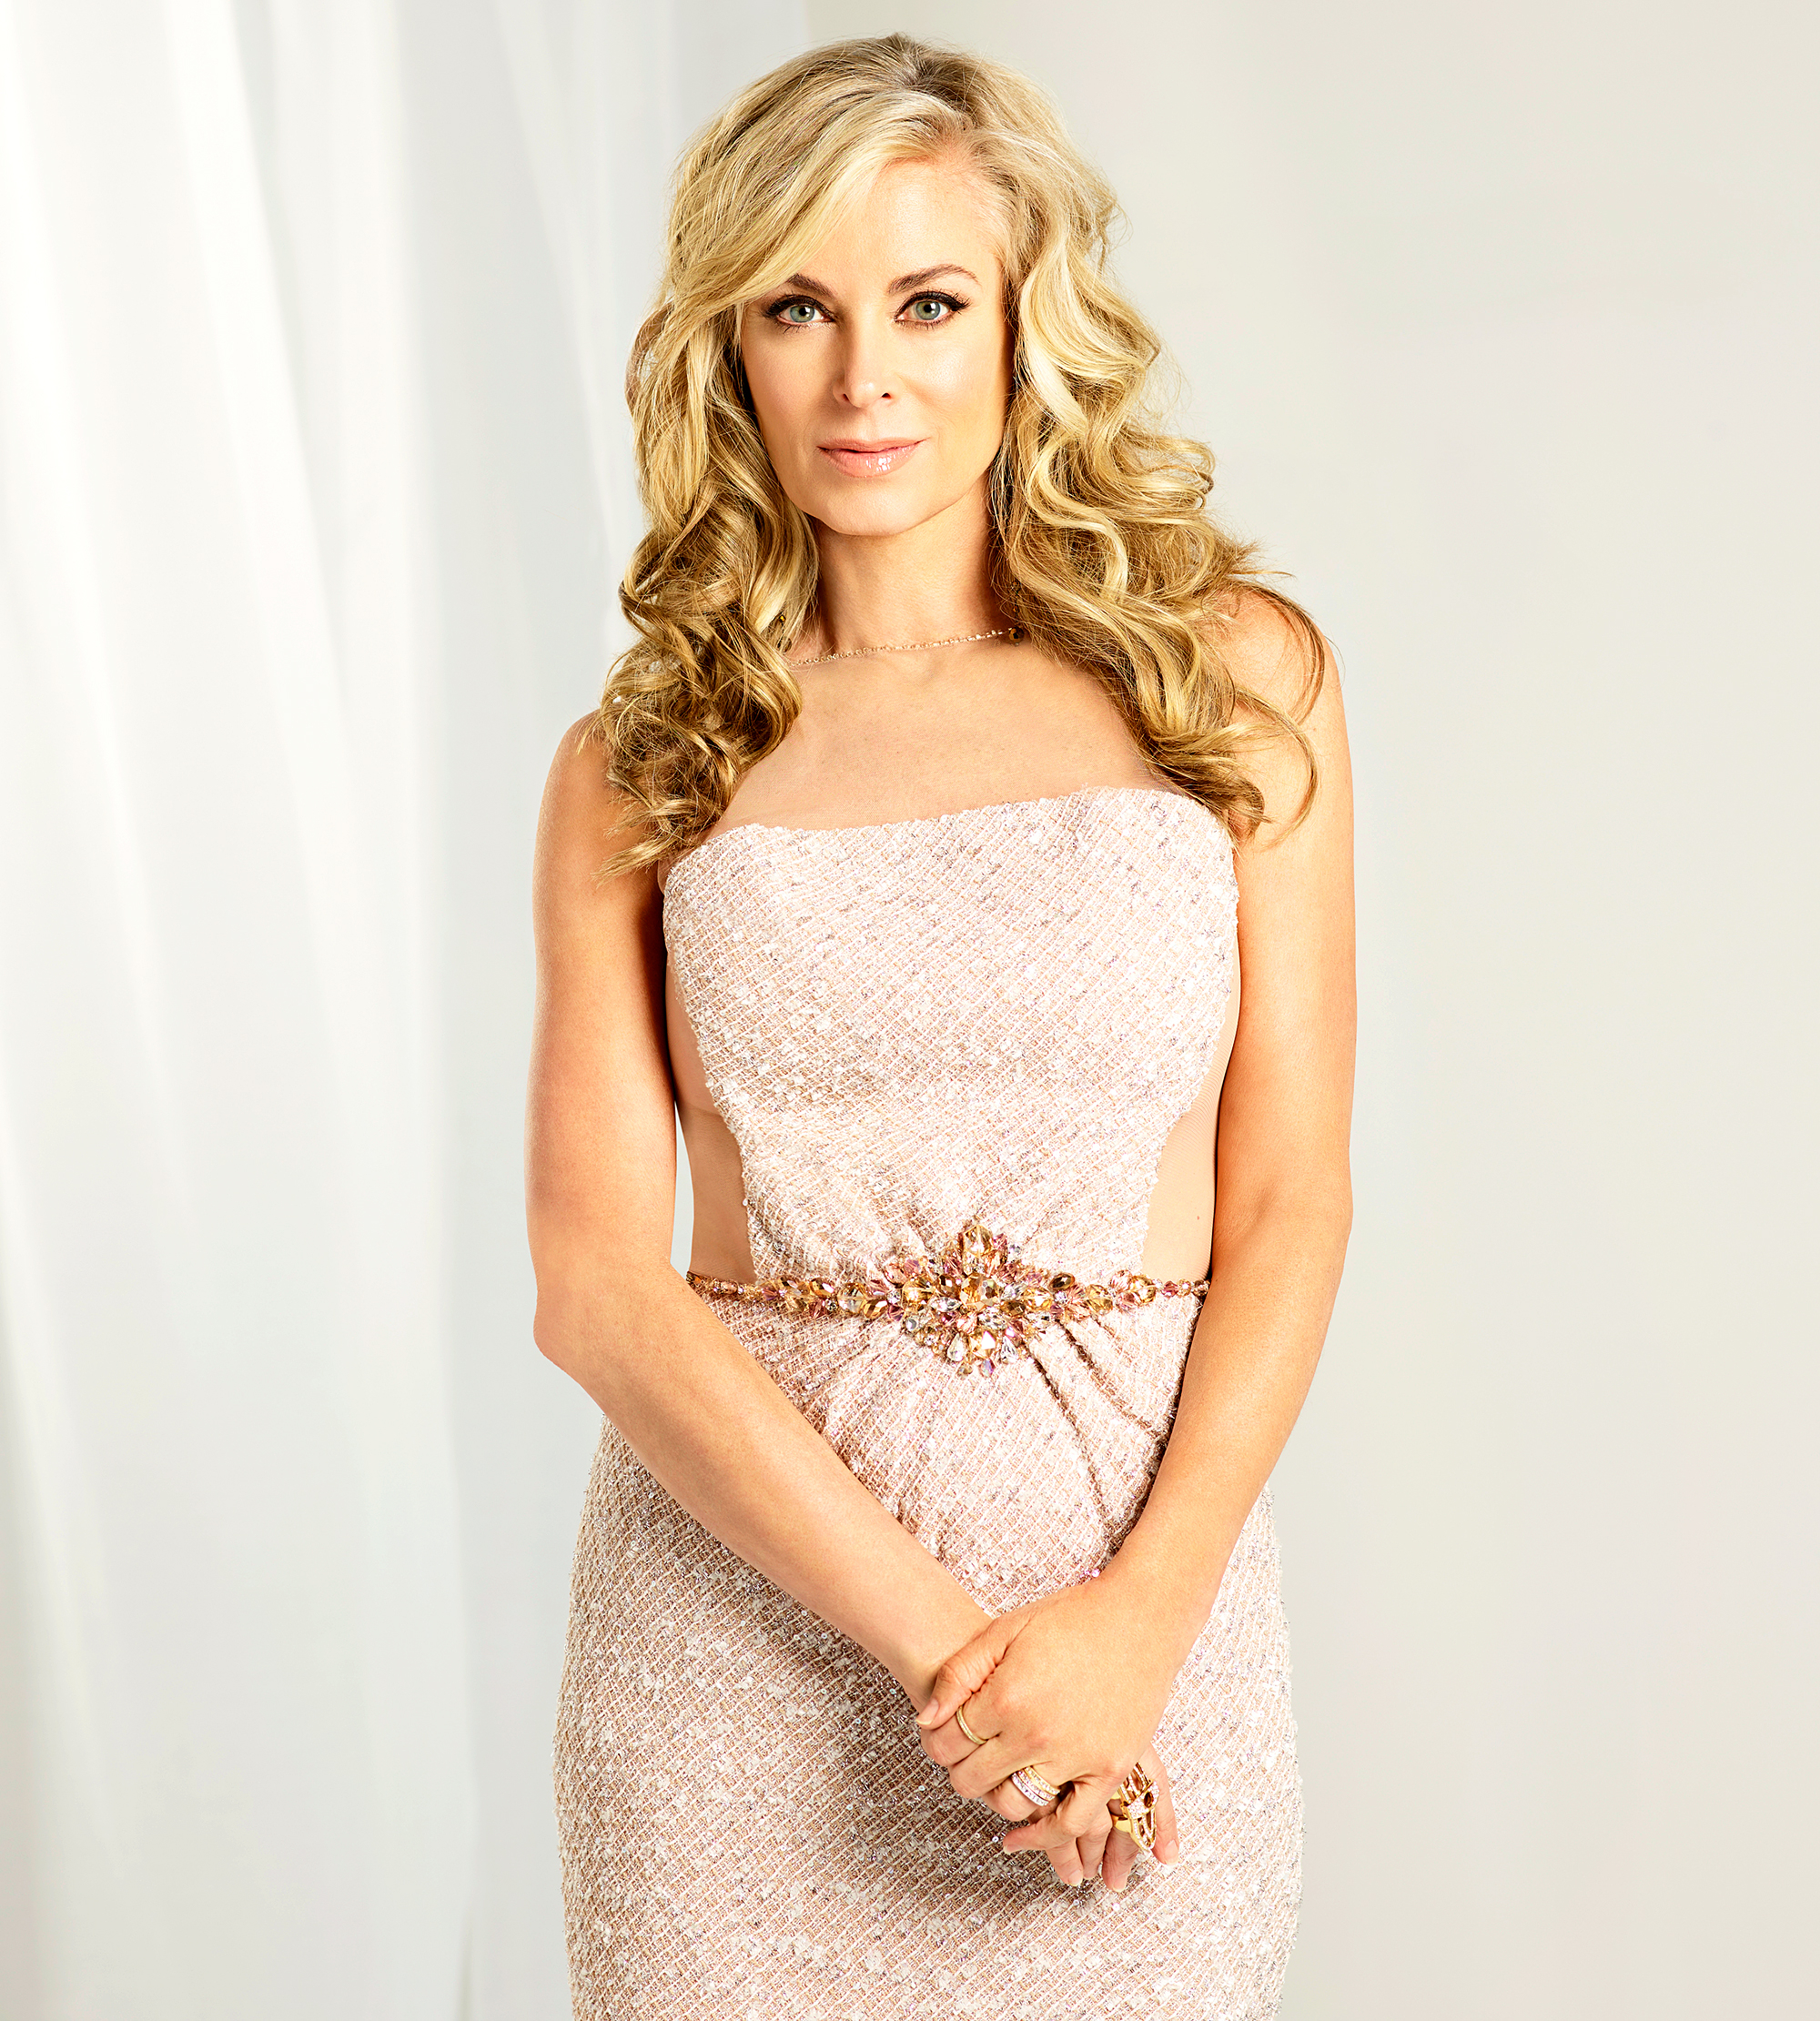 Eileen Davidson Real Housewives of Beverly Hills